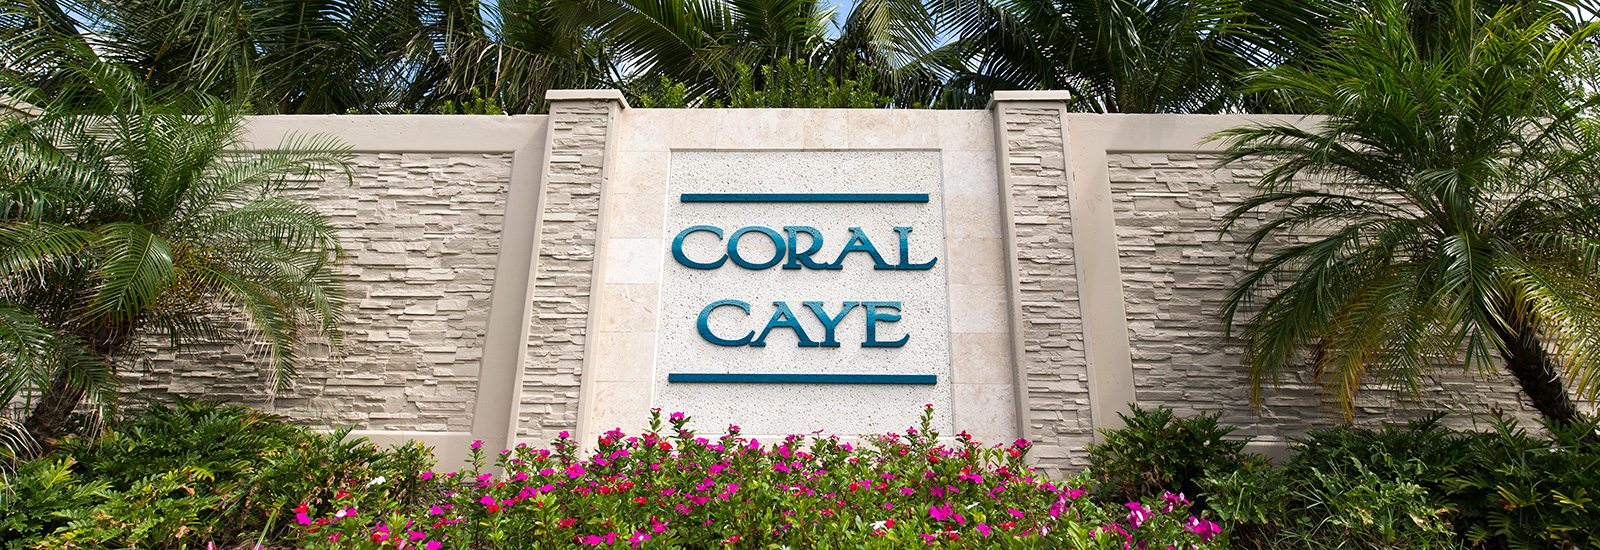 CoralCaye-entrance.jpg